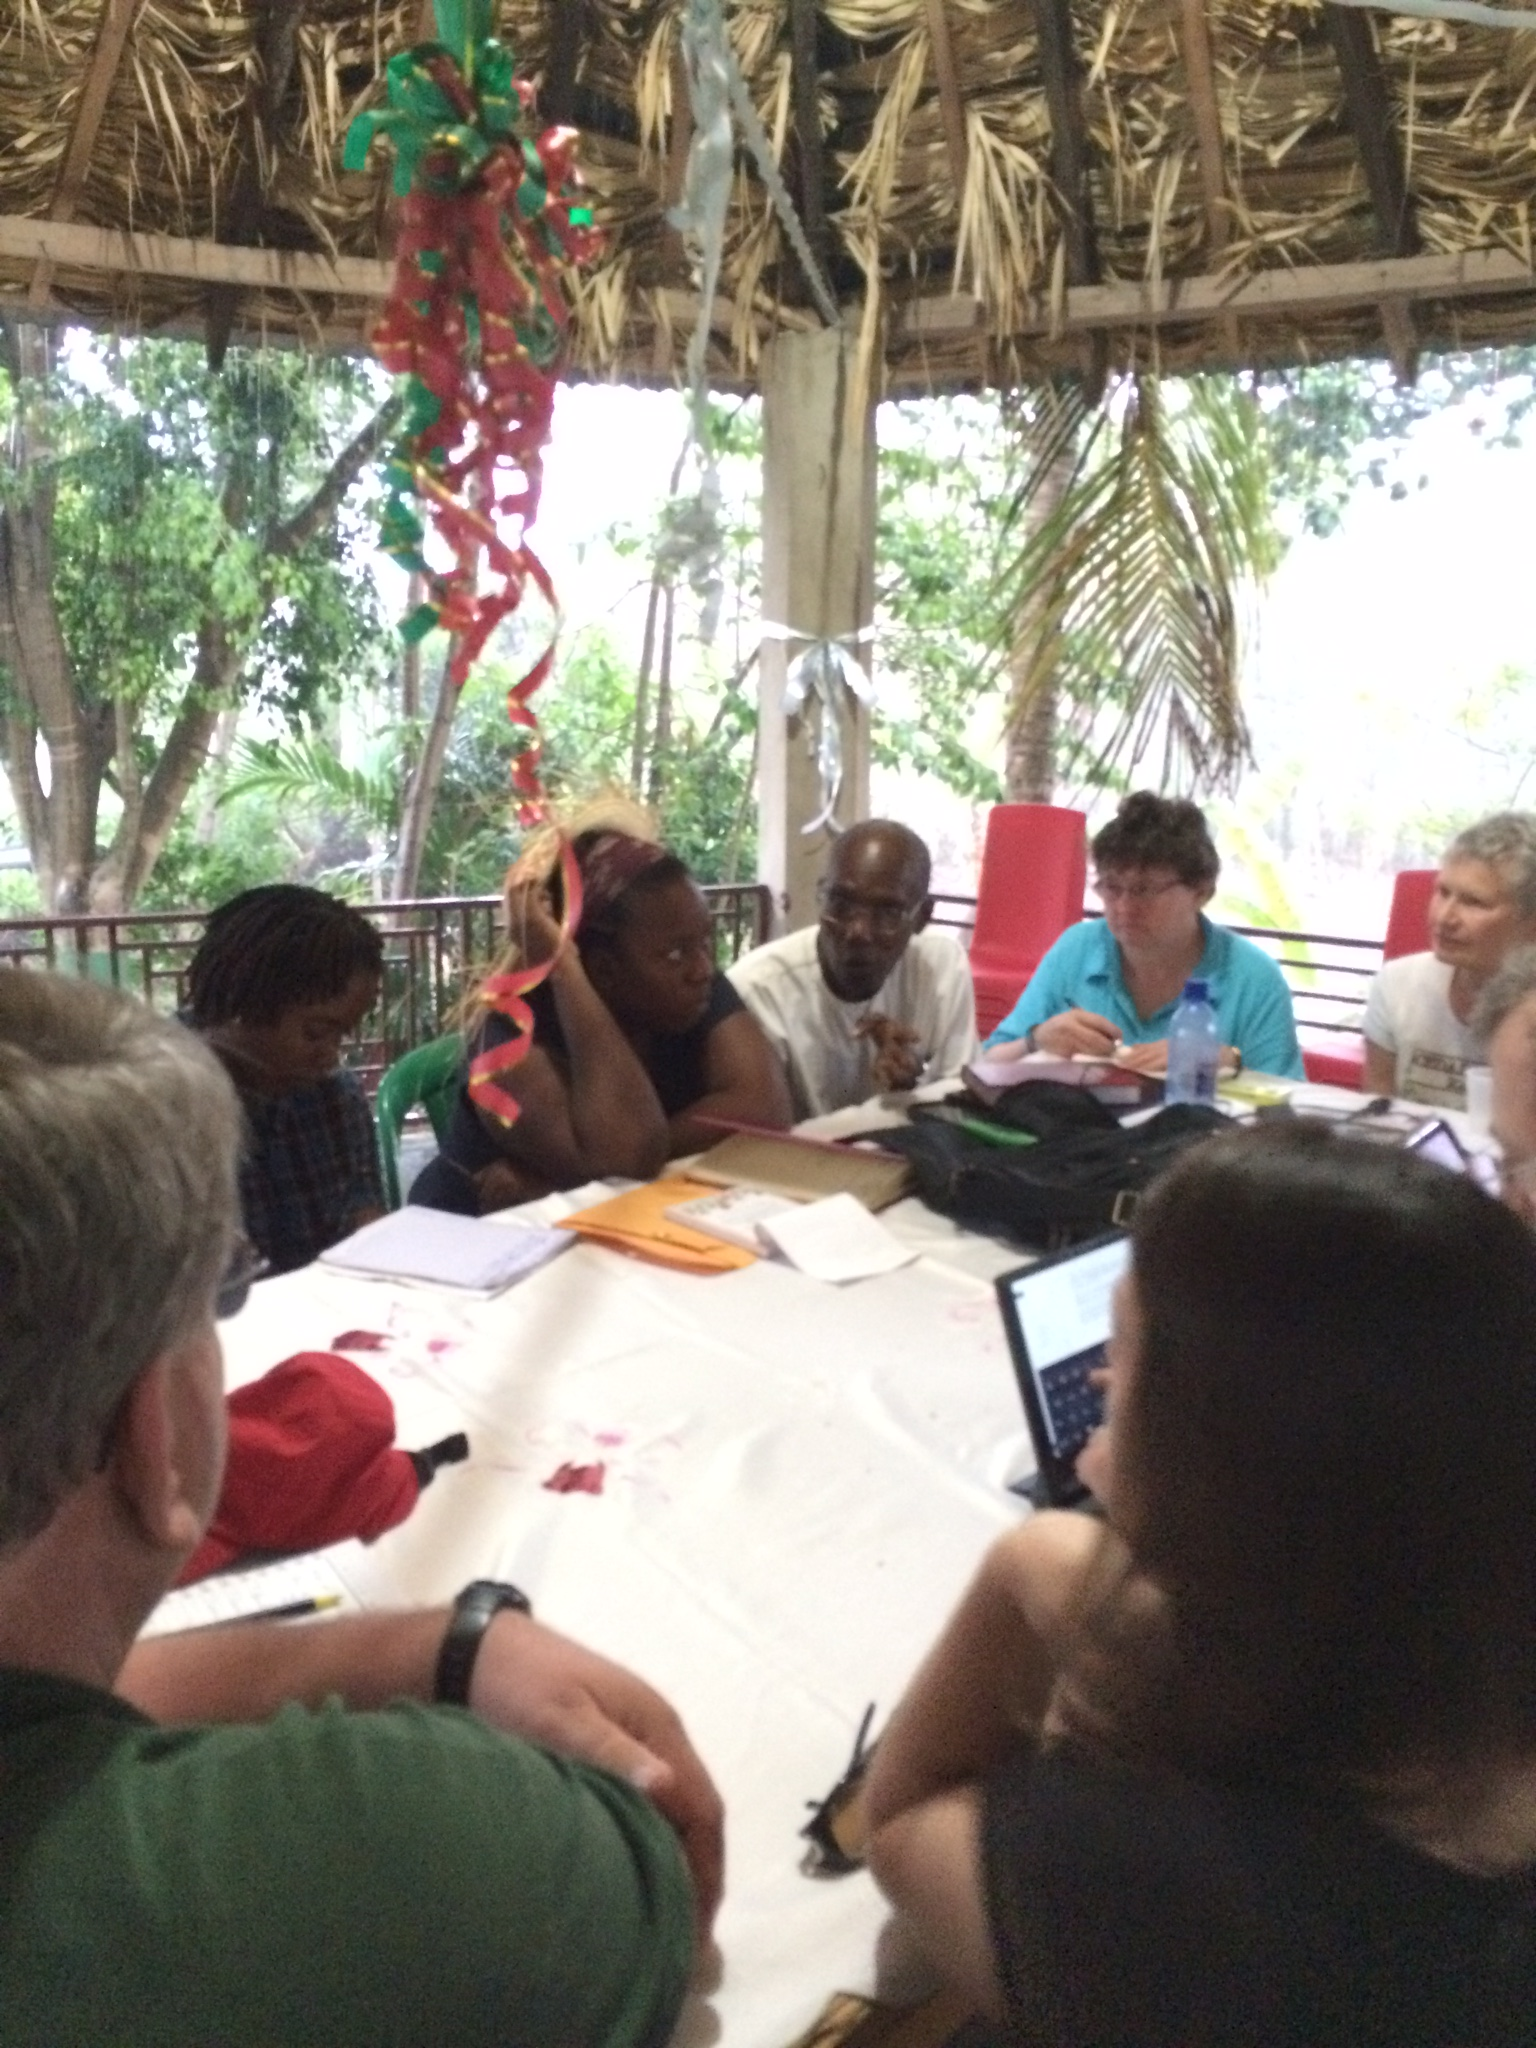 Meeting with MPP executive director Chavannes Jean-Baptiste in his gazebo during a serious downpour! We had to gather in close to hear him...